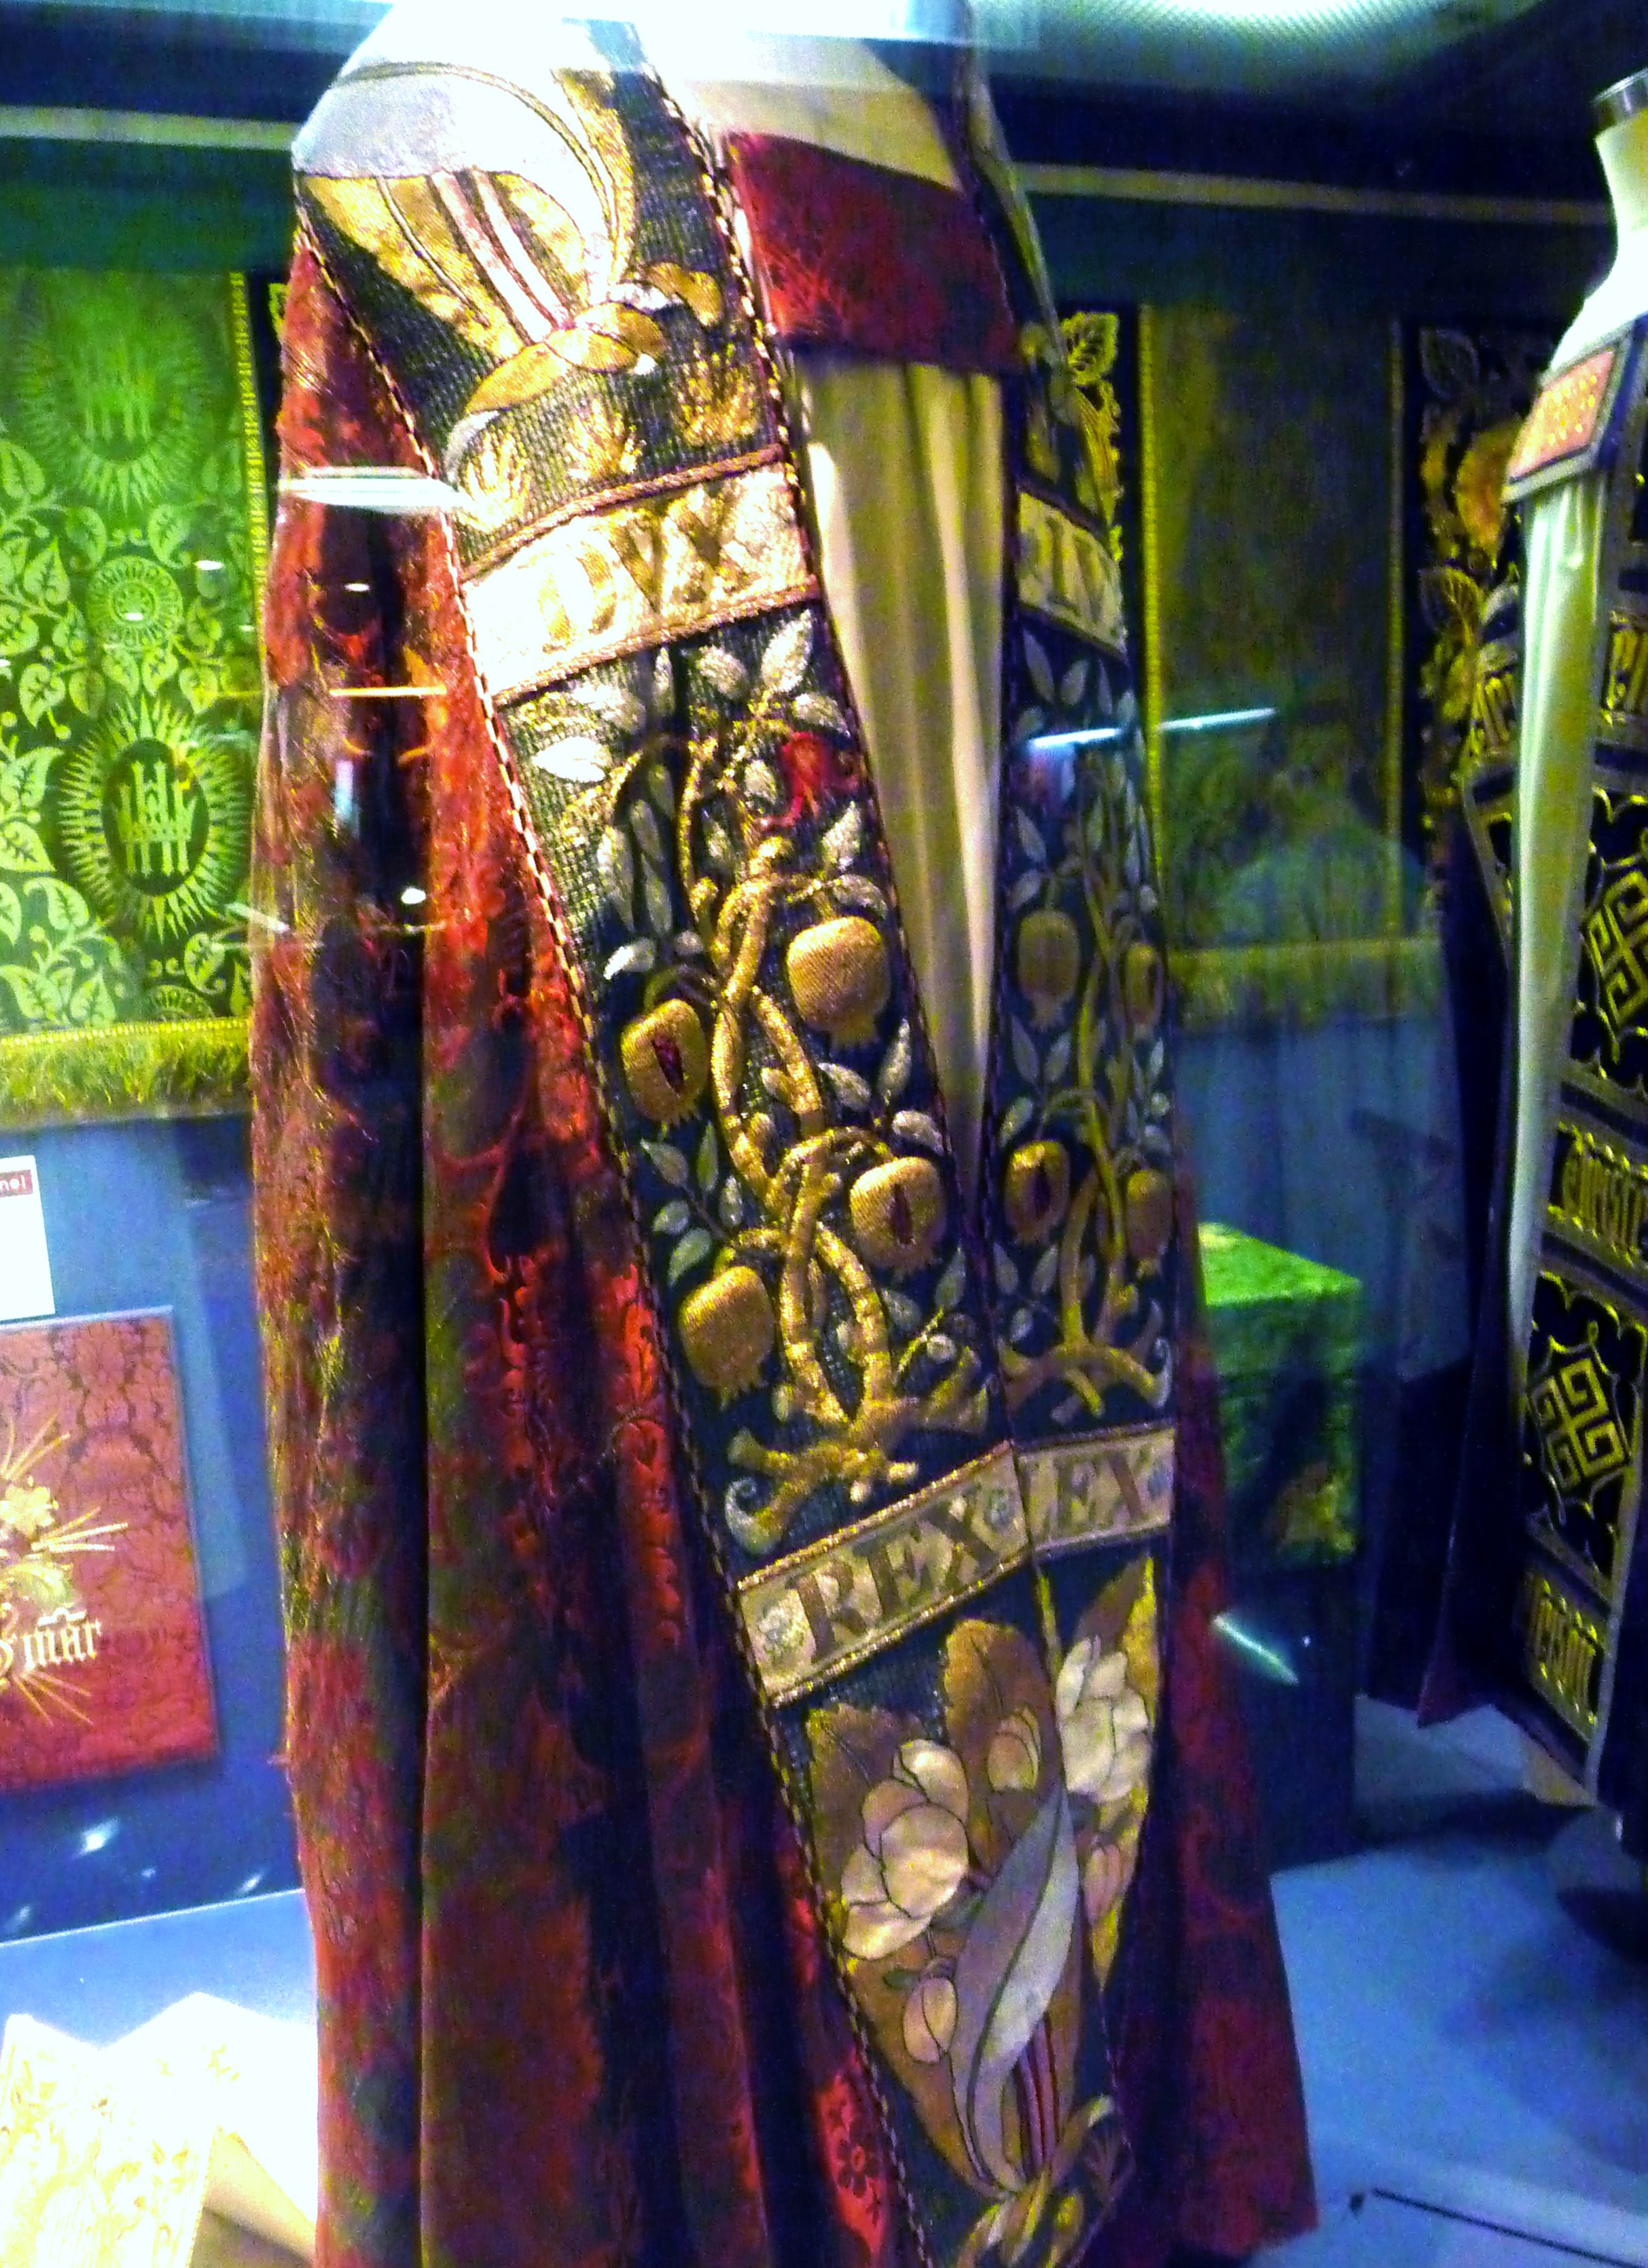 embroidered Cope designed in 1870's and embroidered in East Grinstead  convent on display in Elizabeth Hoare Gallery of Liverpool Cathedral